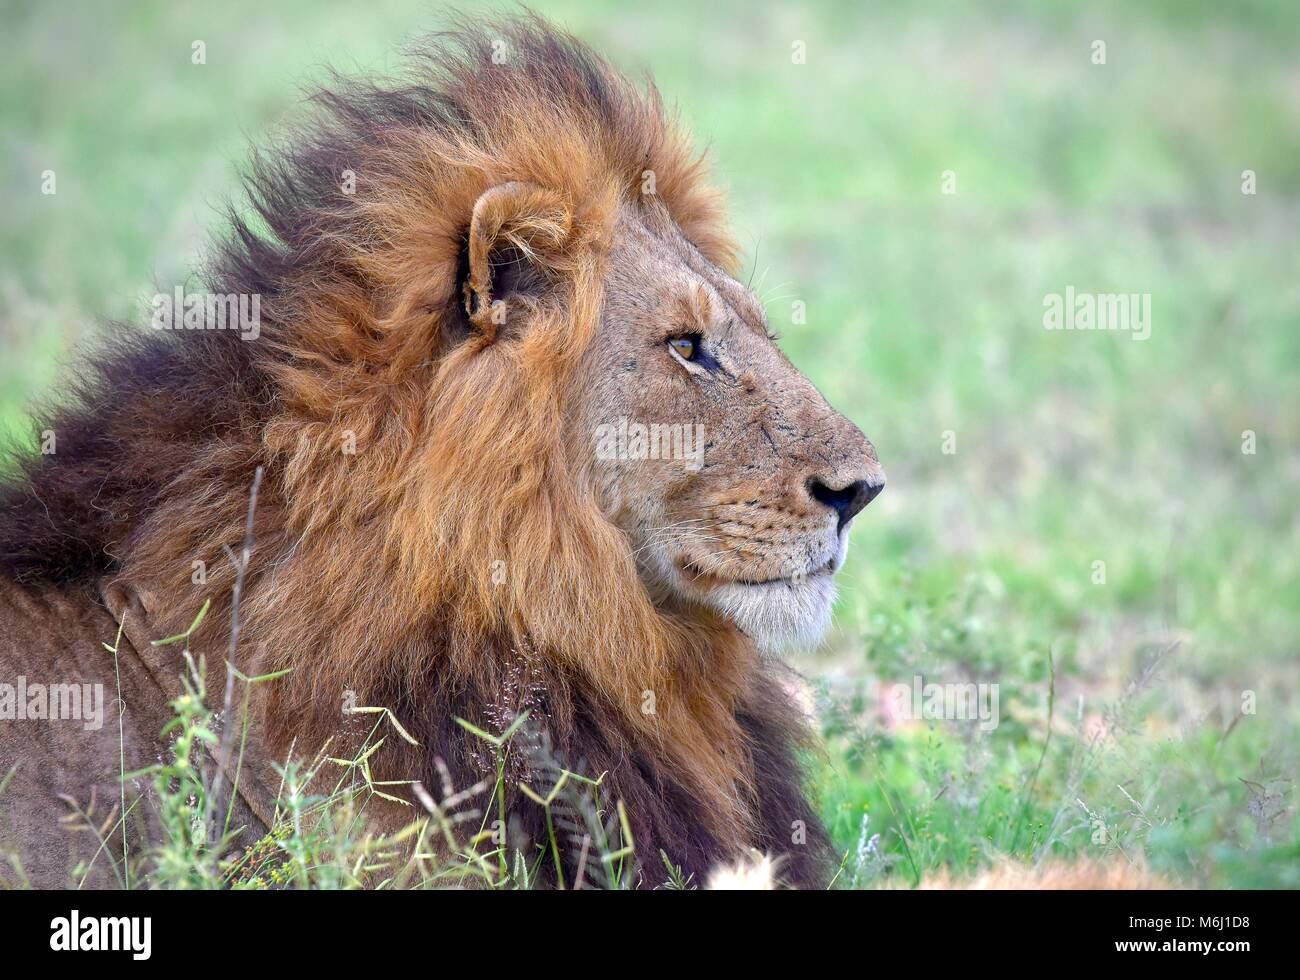 Kruger Park, South Africa. A wildlife and bird paradise. Stunning maned lion portrait - Stock Image